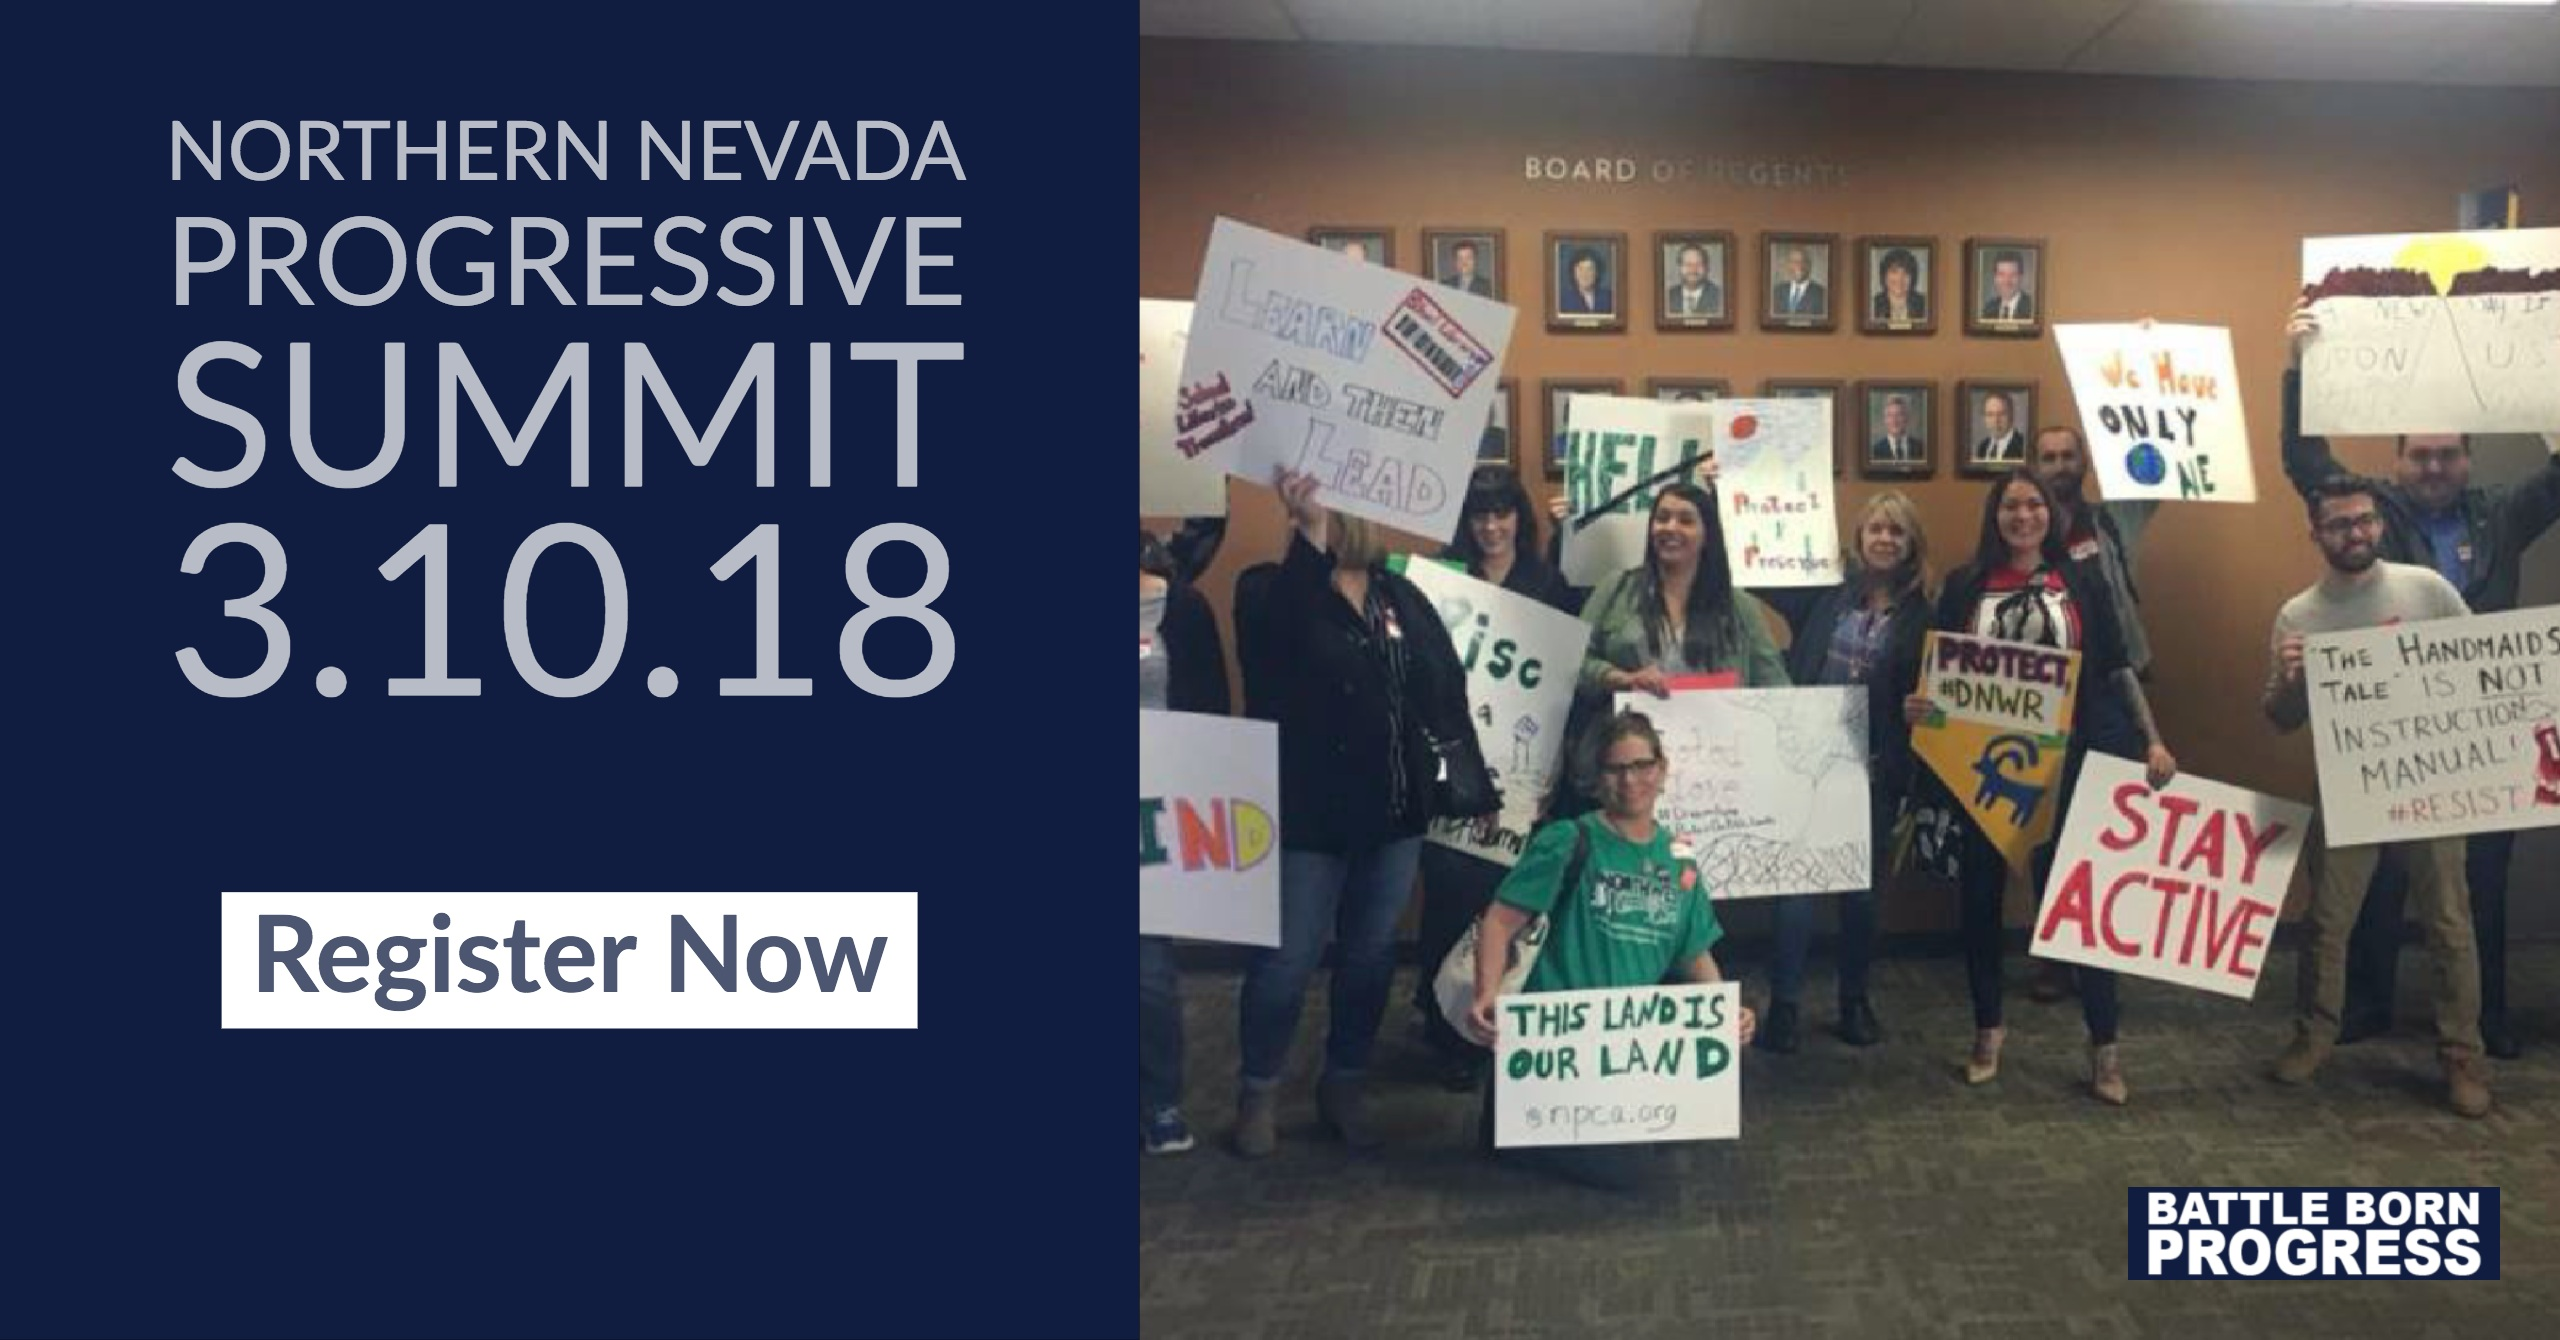 Northern Nevada Summit 2018